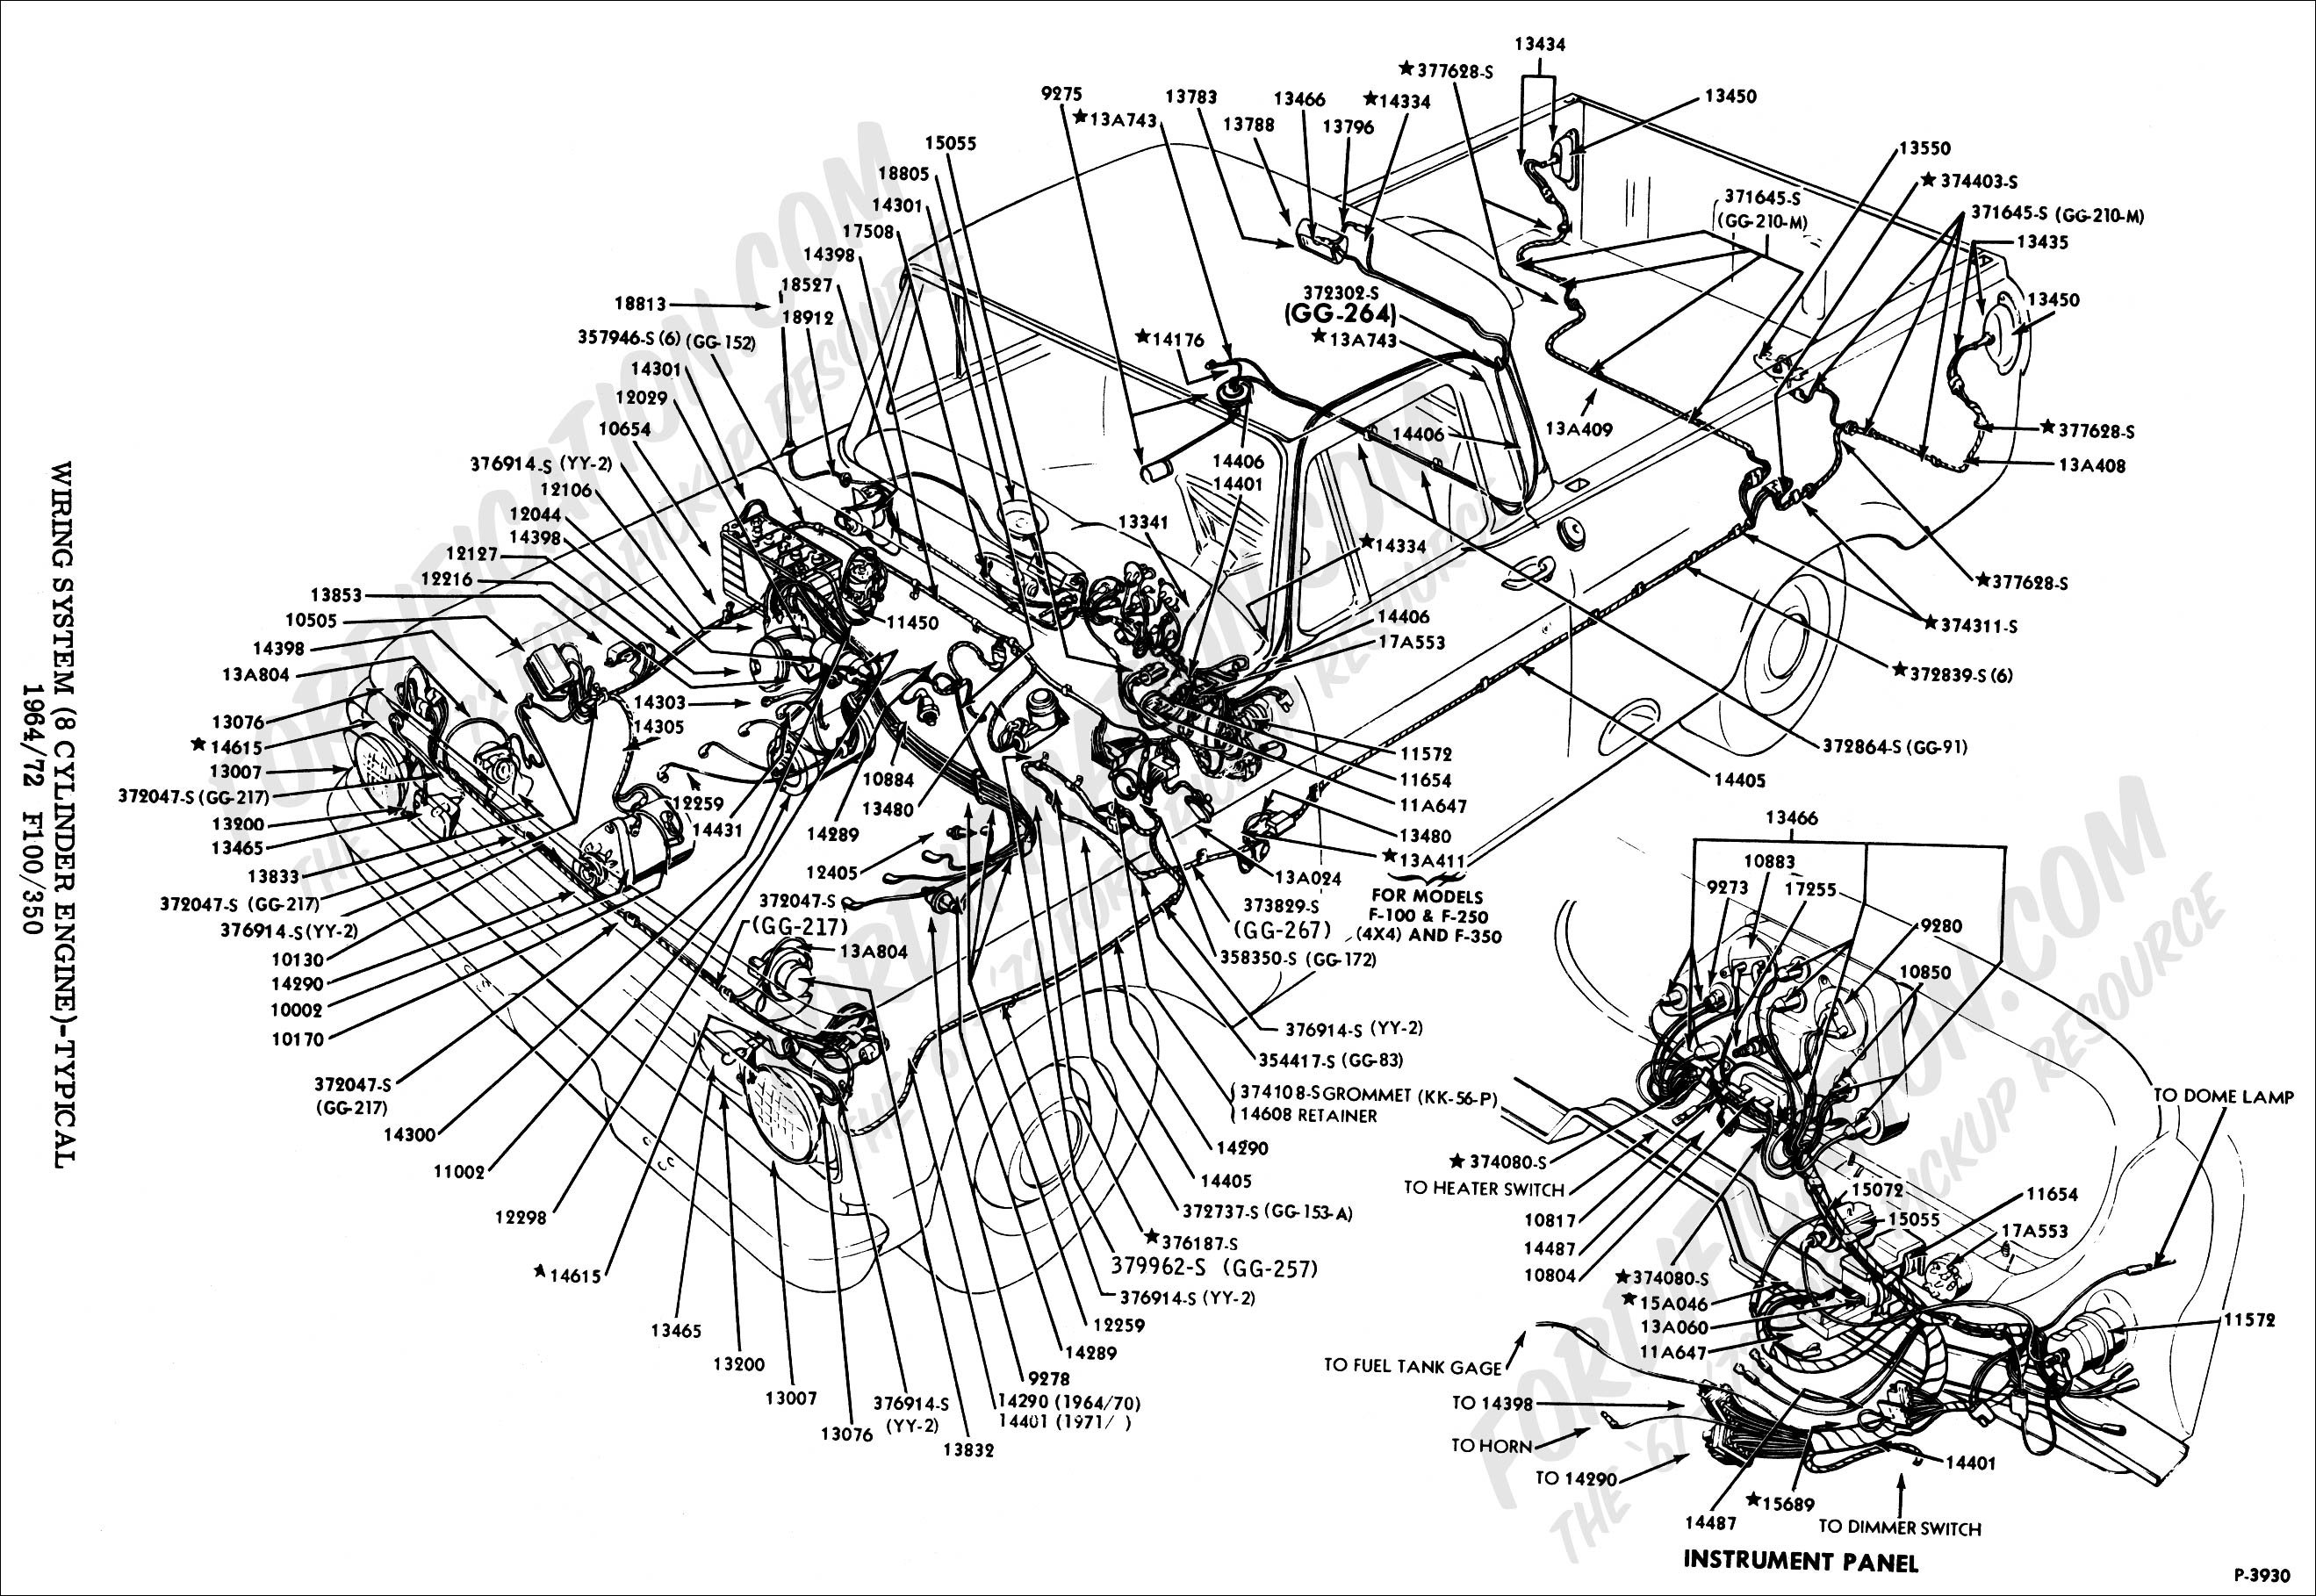 wiringsystem_HI 1966 f100 wiring diagram 1966 ford f100 dash wiring diagram \u2022 free 1946 ford truck wiring diagram at gsmx.co